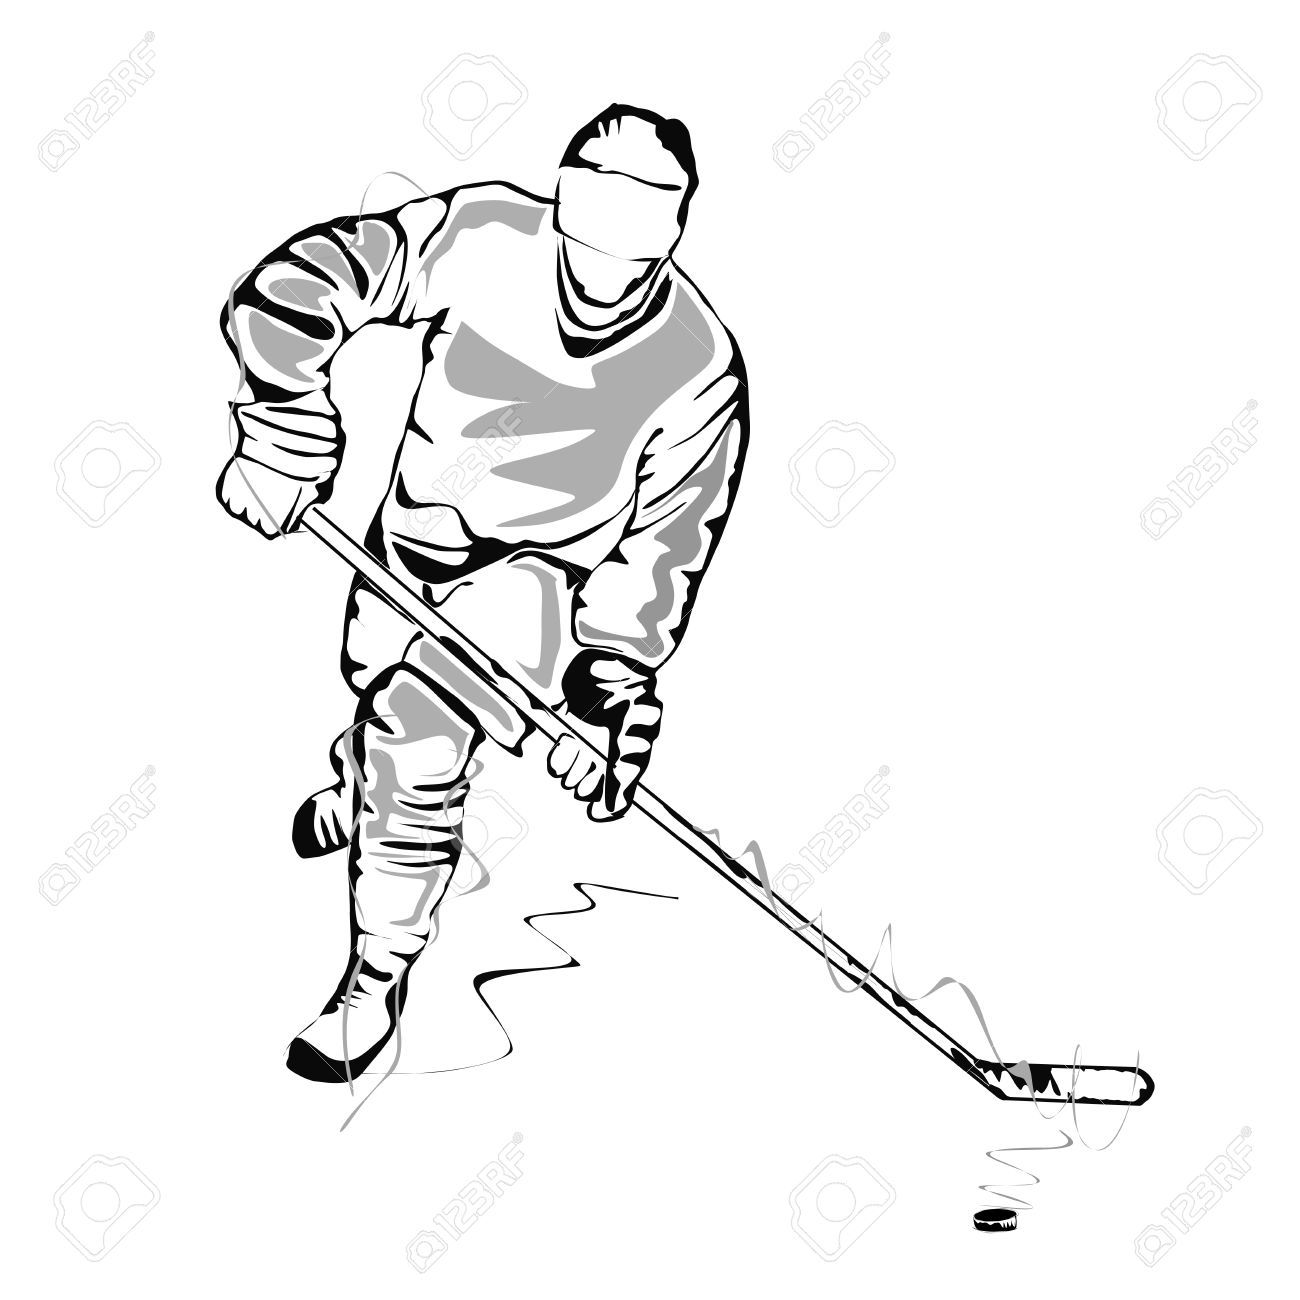 hight resolution of hockey player sketch royalty free cliparts vectors and stock